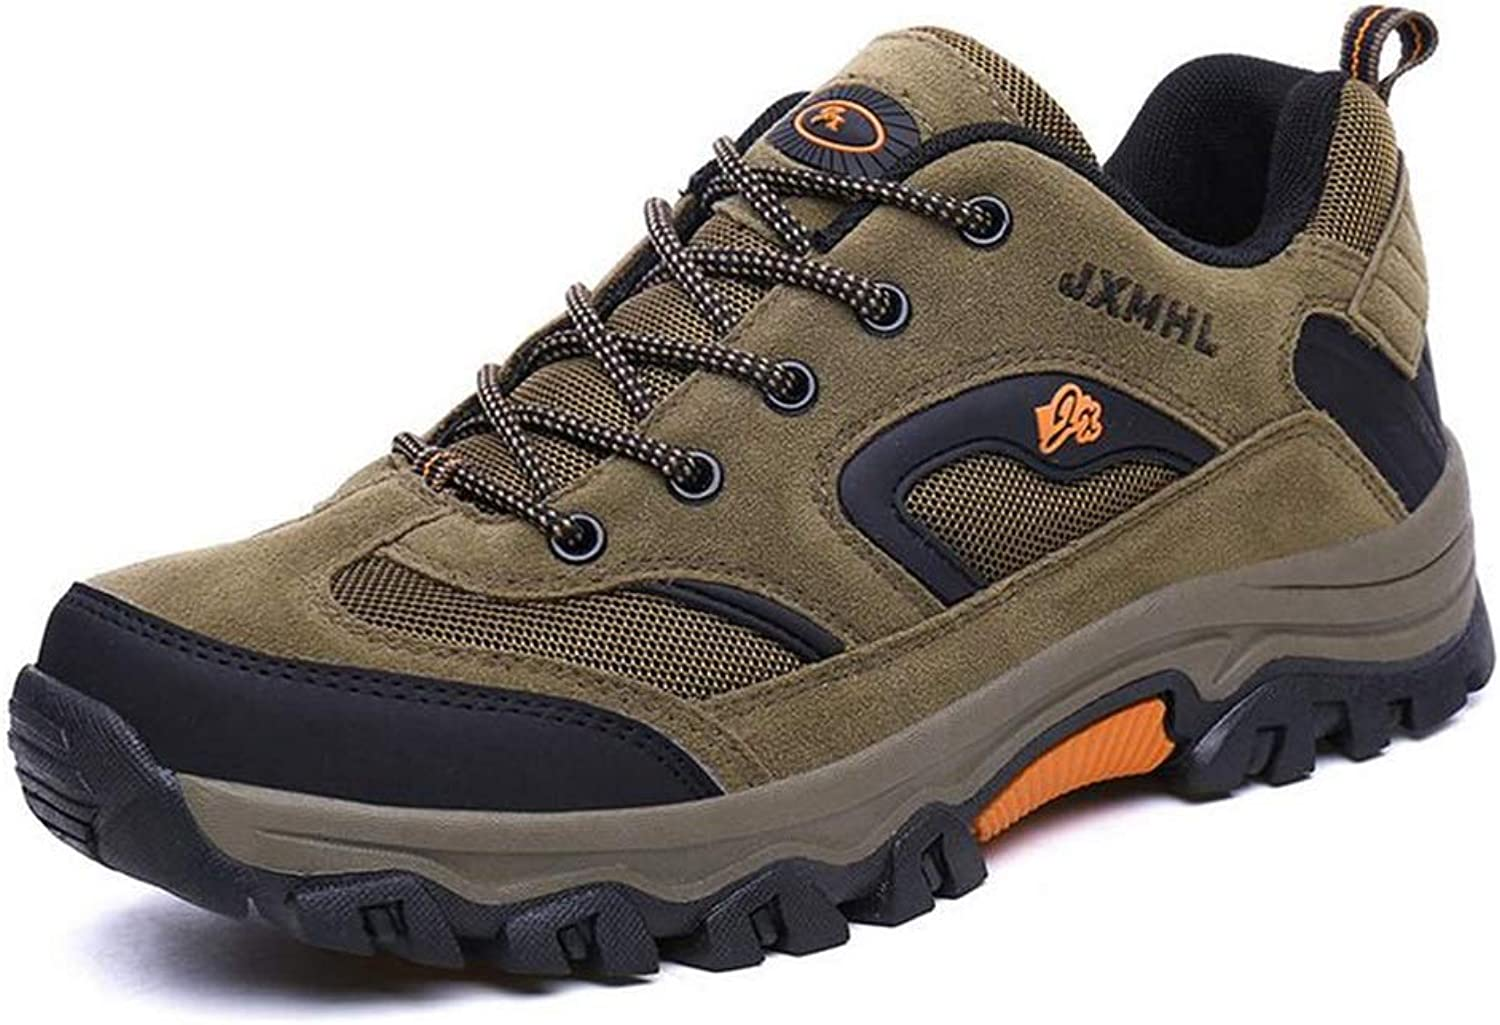 Y-H Mens Boots - Fall Winter Mesh Walking shoes, Men's Outdoor Hiking shoes Climbing Sneakers Footwear For Hiking & Trekking (color   Khaki, Size   43)